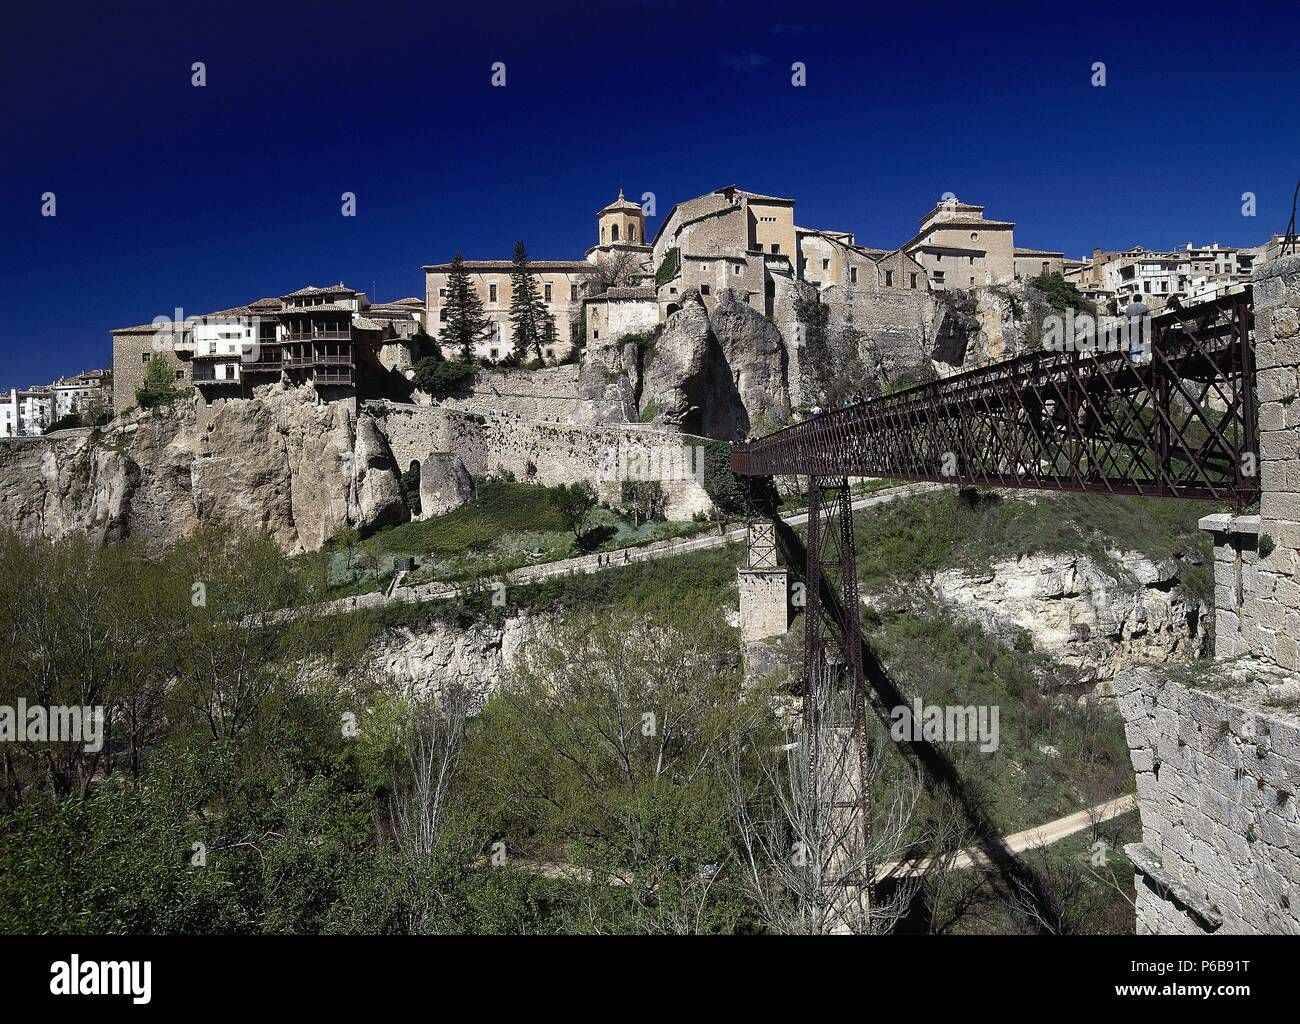 Spain. Cuenca. Panorama of the old city with Hanging Houses in the Huecar Gorge. First, the Bridge of Saint Paul. - Stock Image